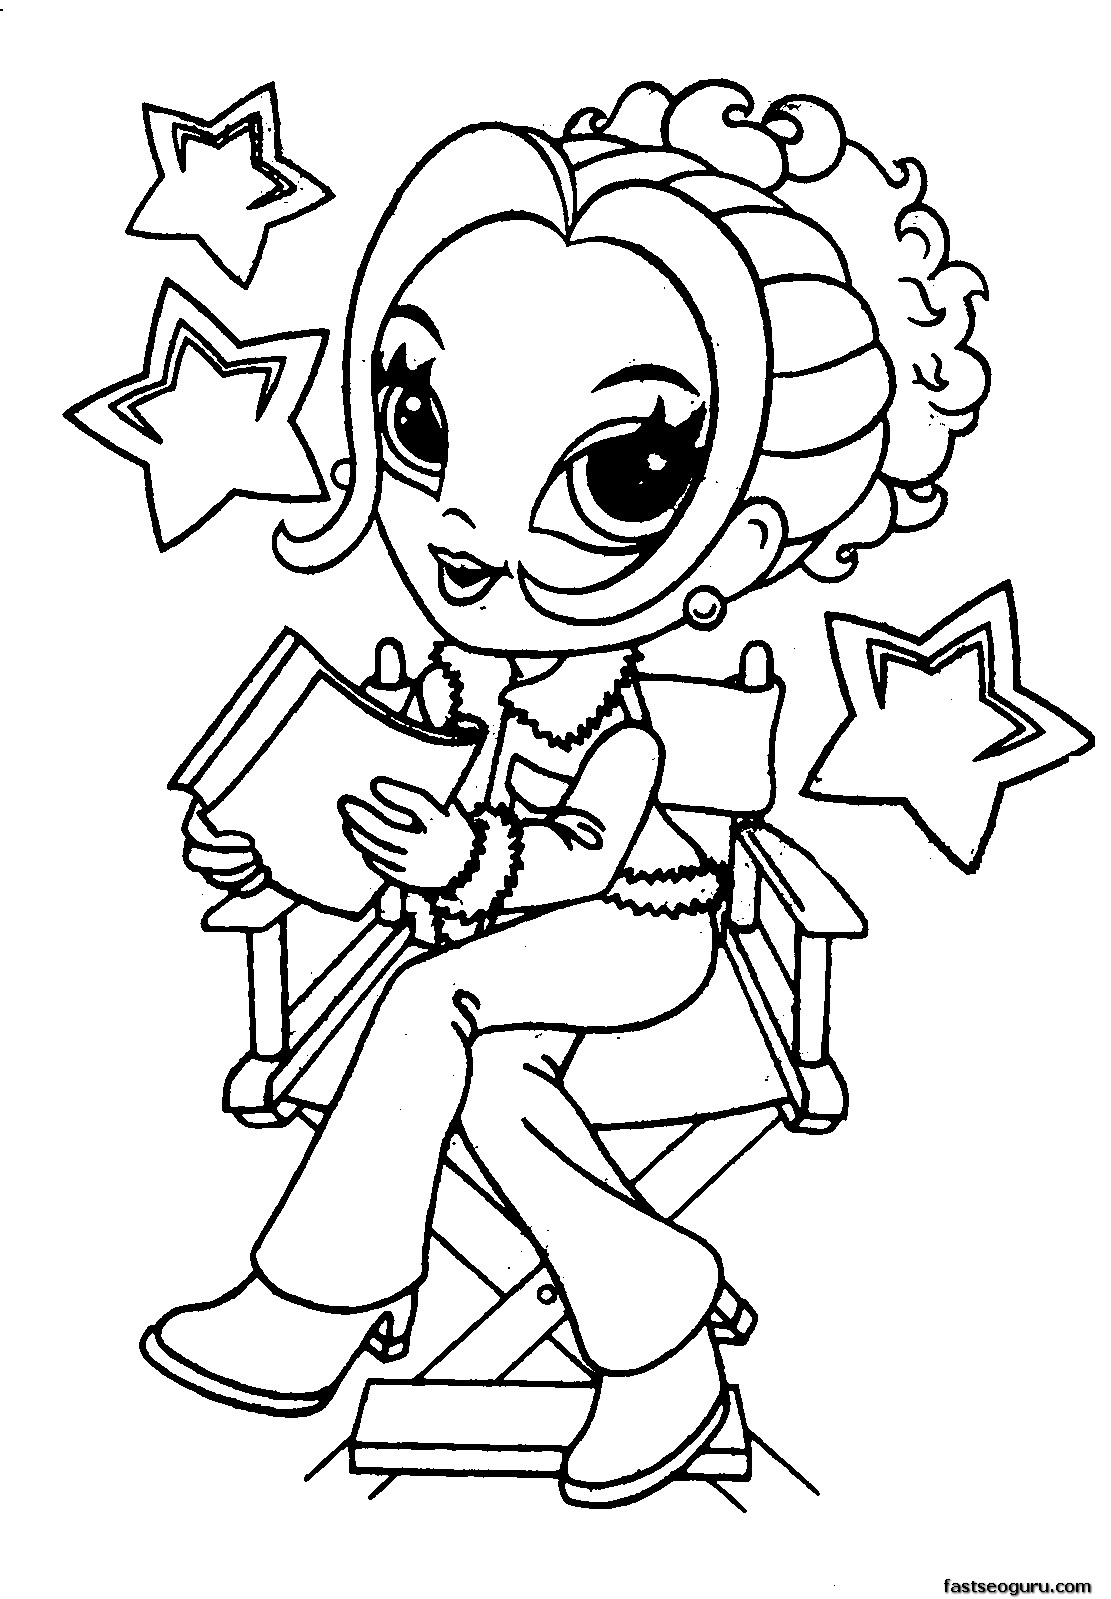 free girl coloring pages to print coloring pages for girls best coloring pages for kids girl print to pages free coloring